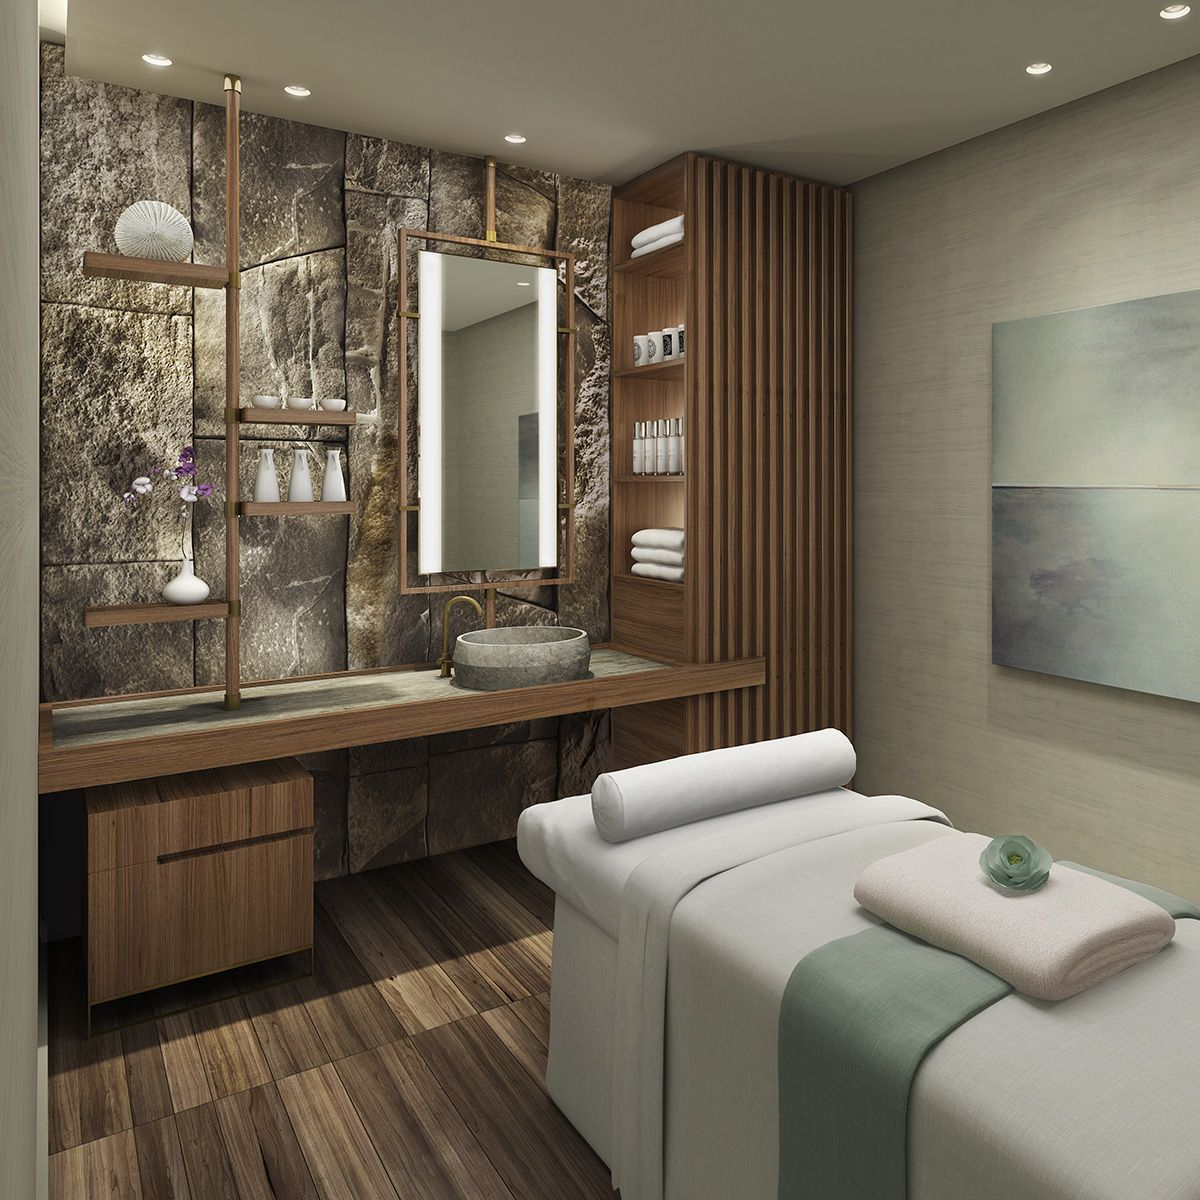 Small Bathroomdesign Ideas: Interior Design Firm Specializing In Luxury Hospitality